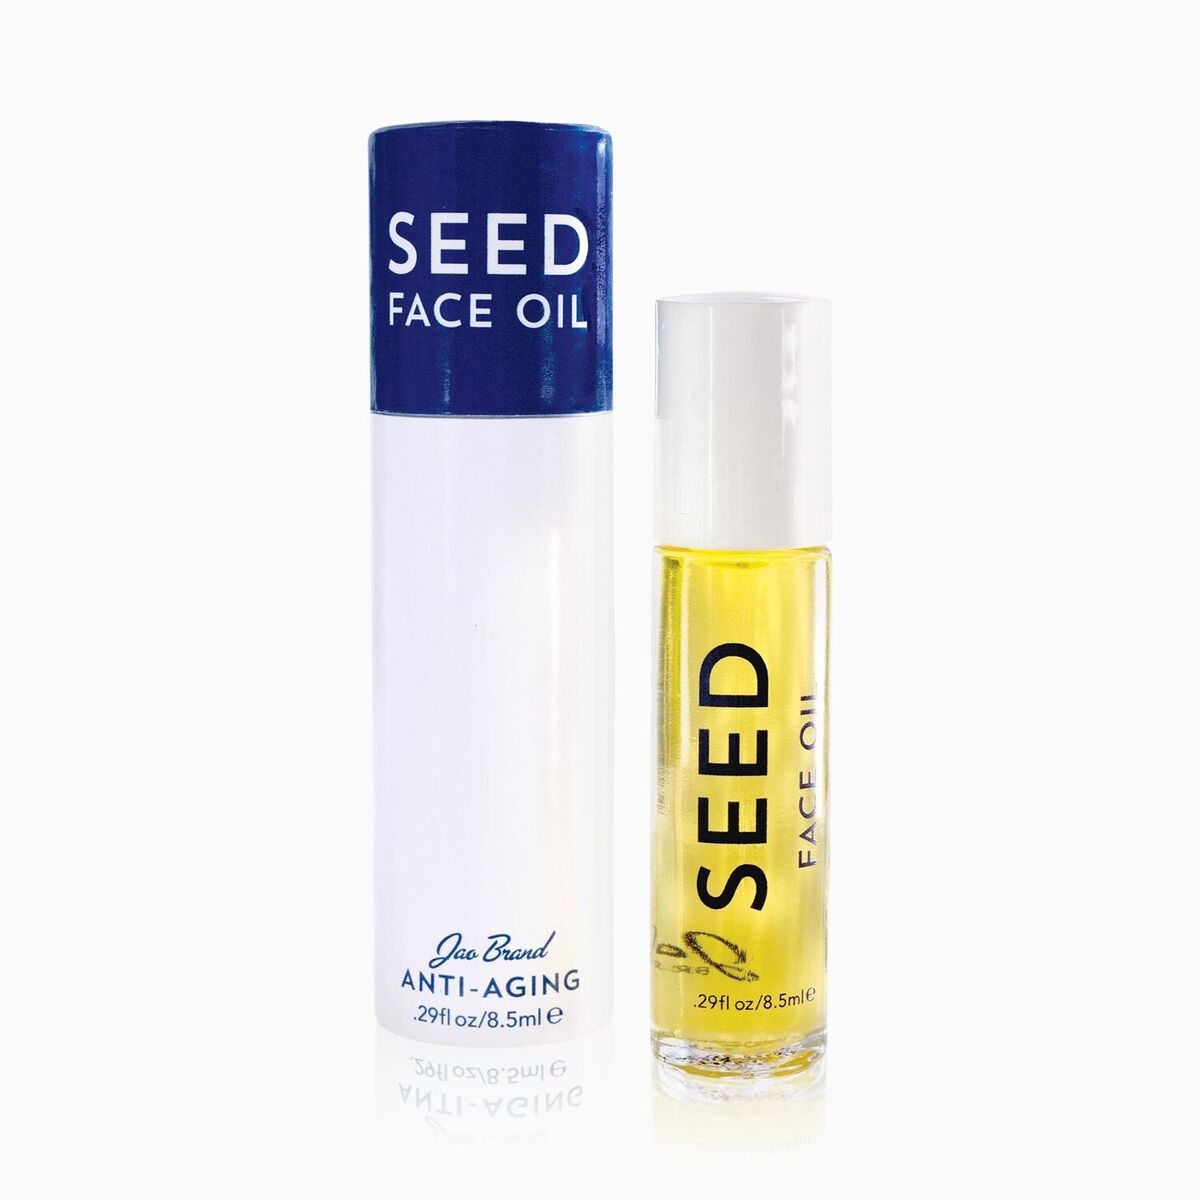 Seed Face Oil